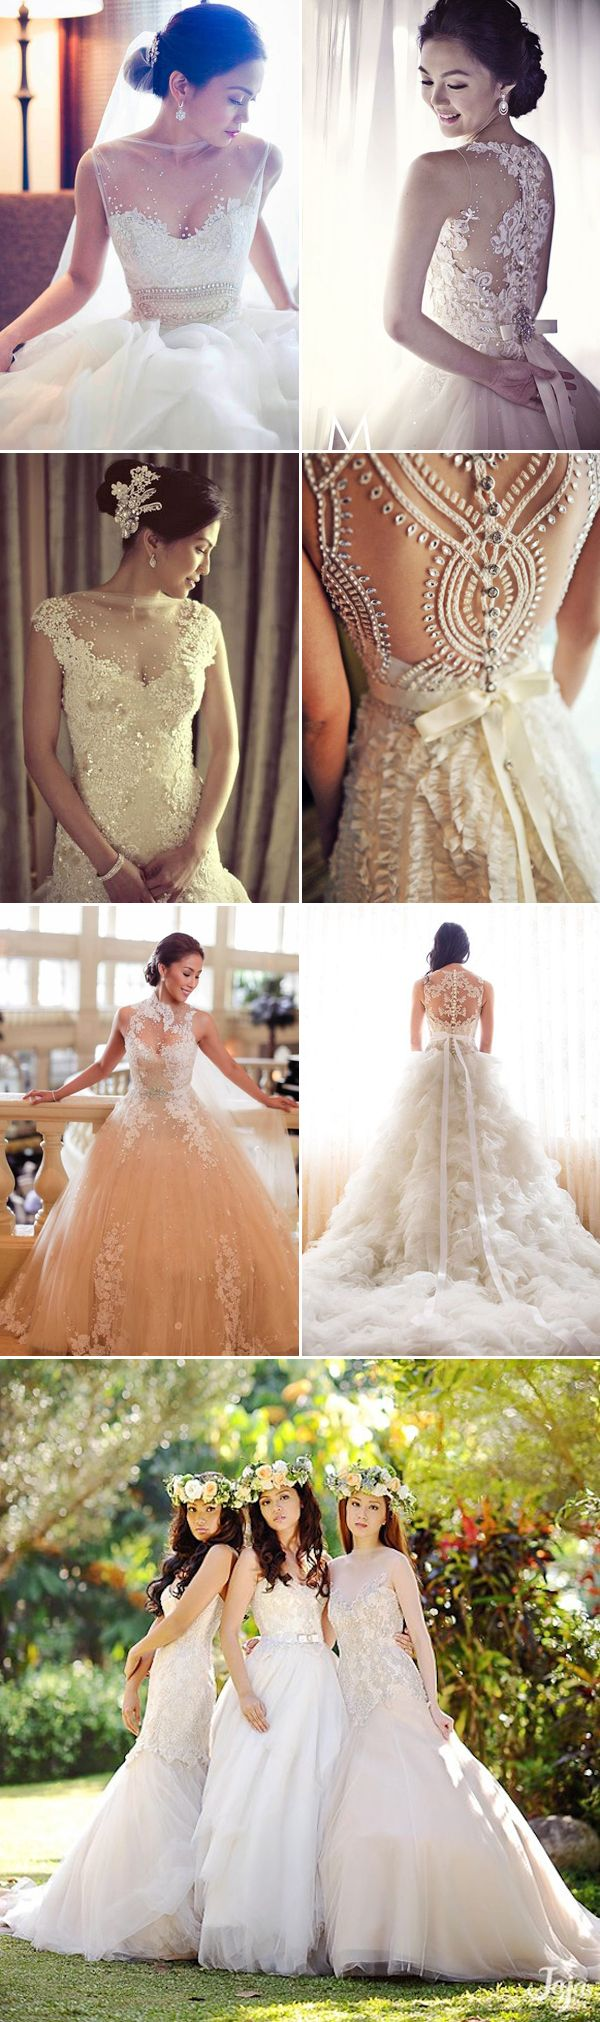 Top 10 Filipino Wedding Dress Designers We Love!